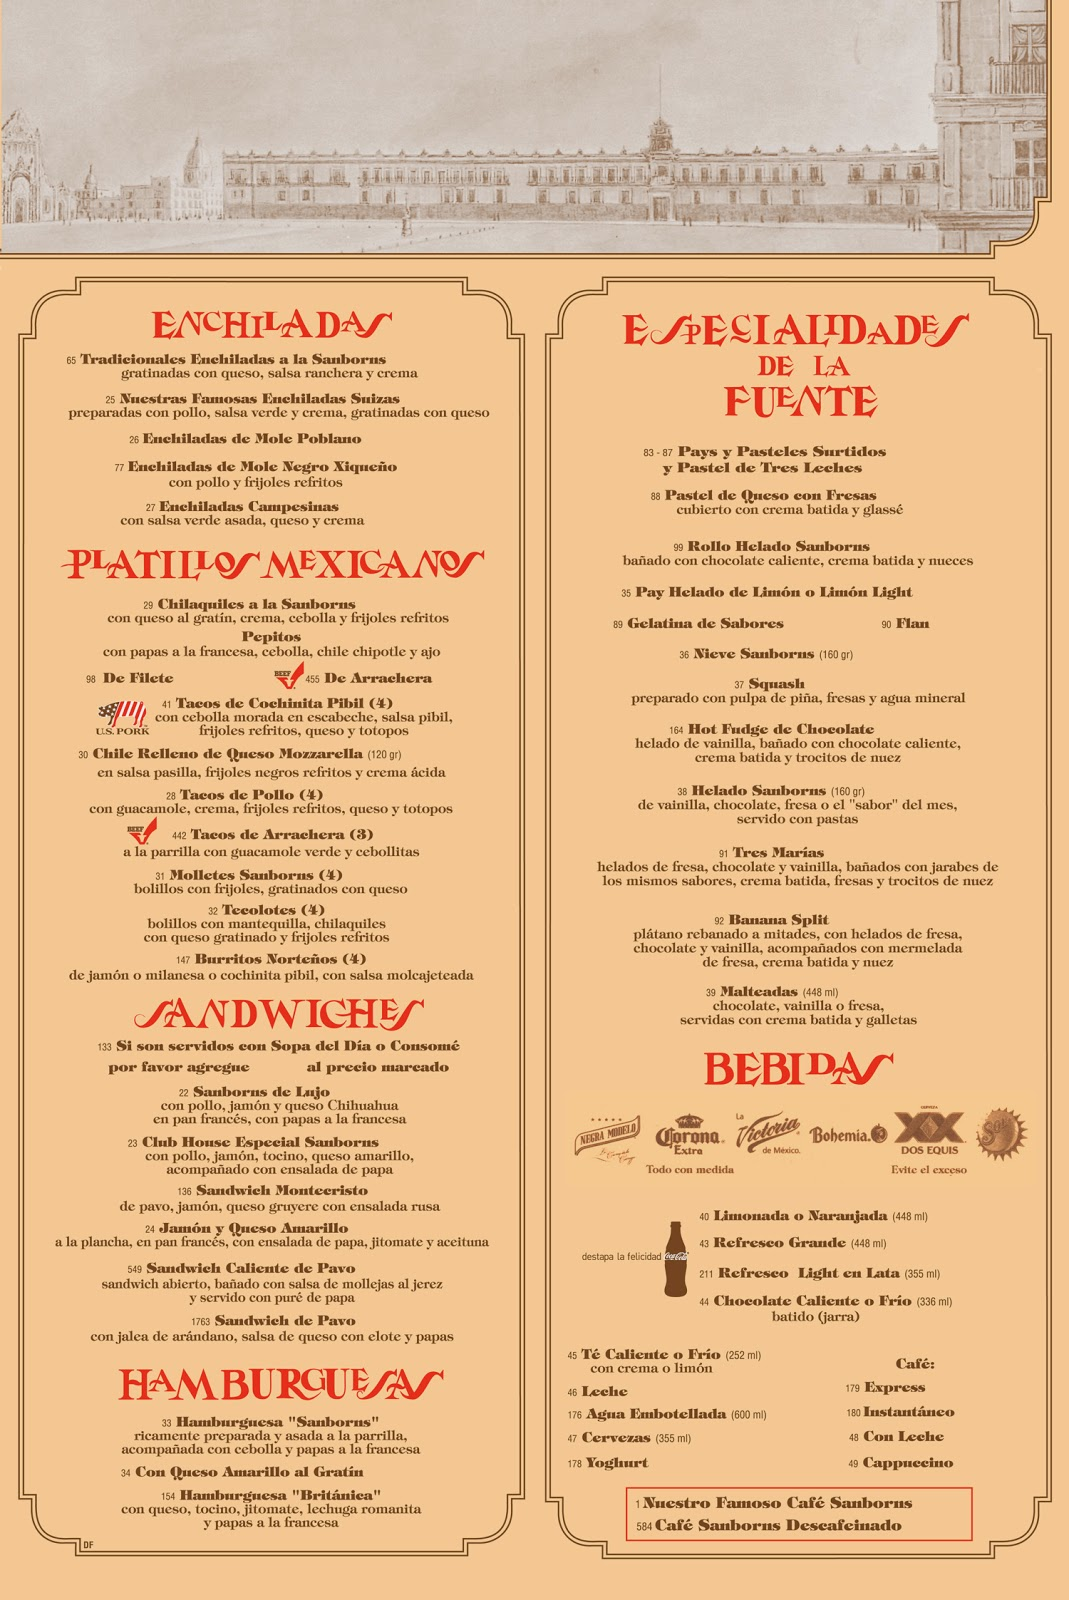 Eat world los azulejos sanborns m xico d f for Sanborns de los azulejos menu